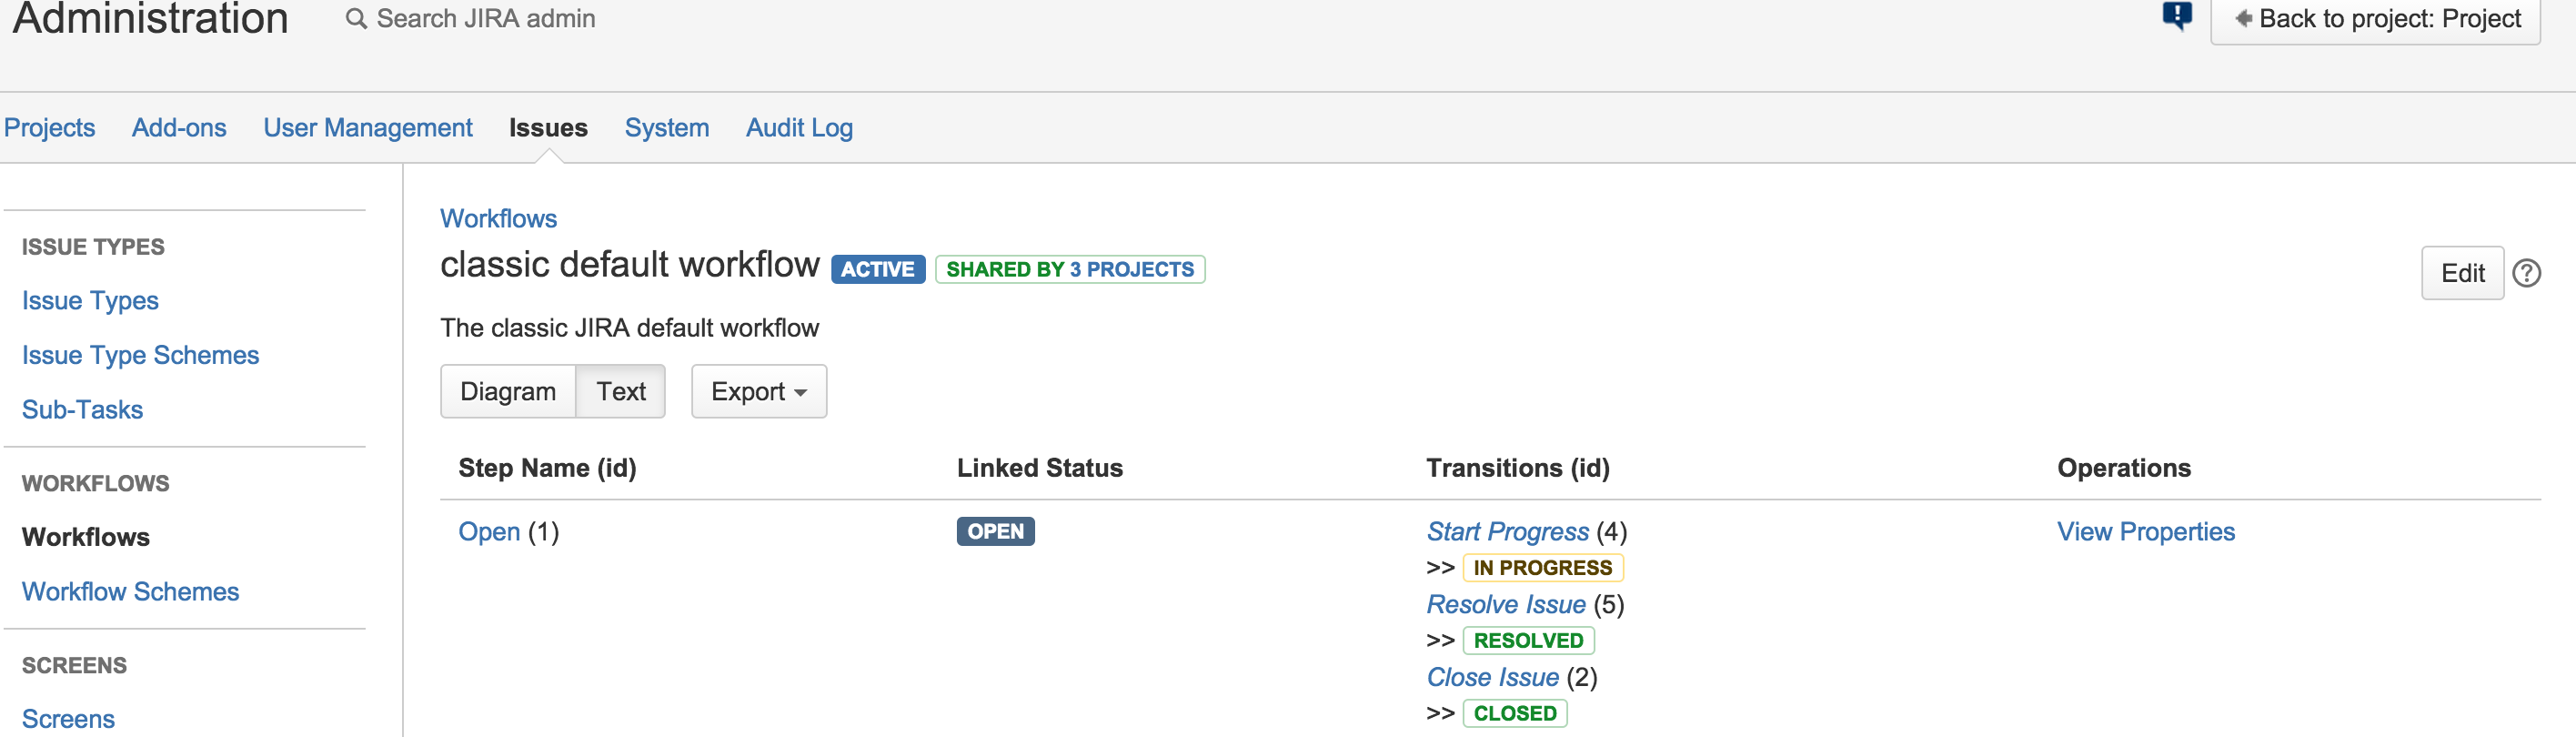 doc/project_services/img/jira_workflow_screenshot.png